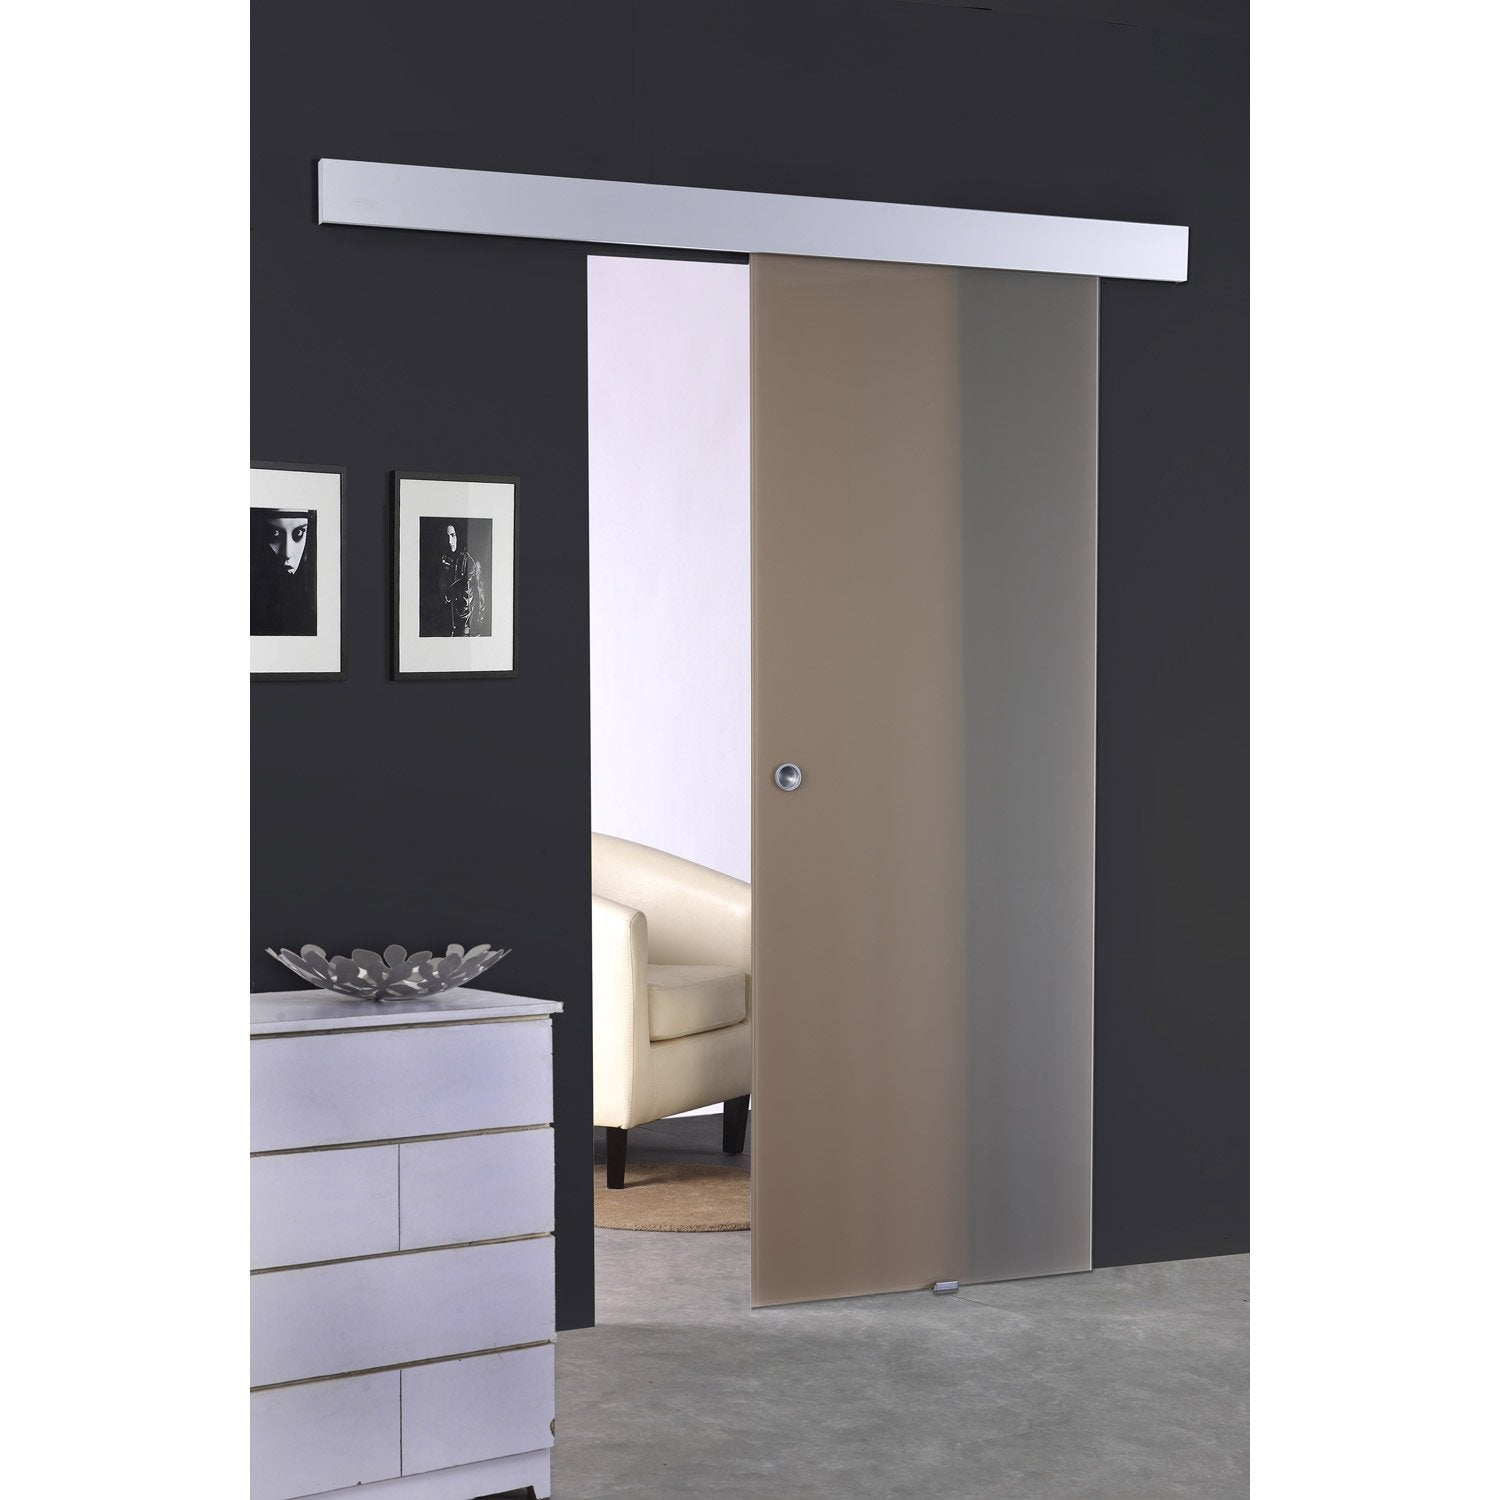 porte coulissante verre tremp leroy merlin. Black Bedroom Furniture Sets. Home Design Ideas